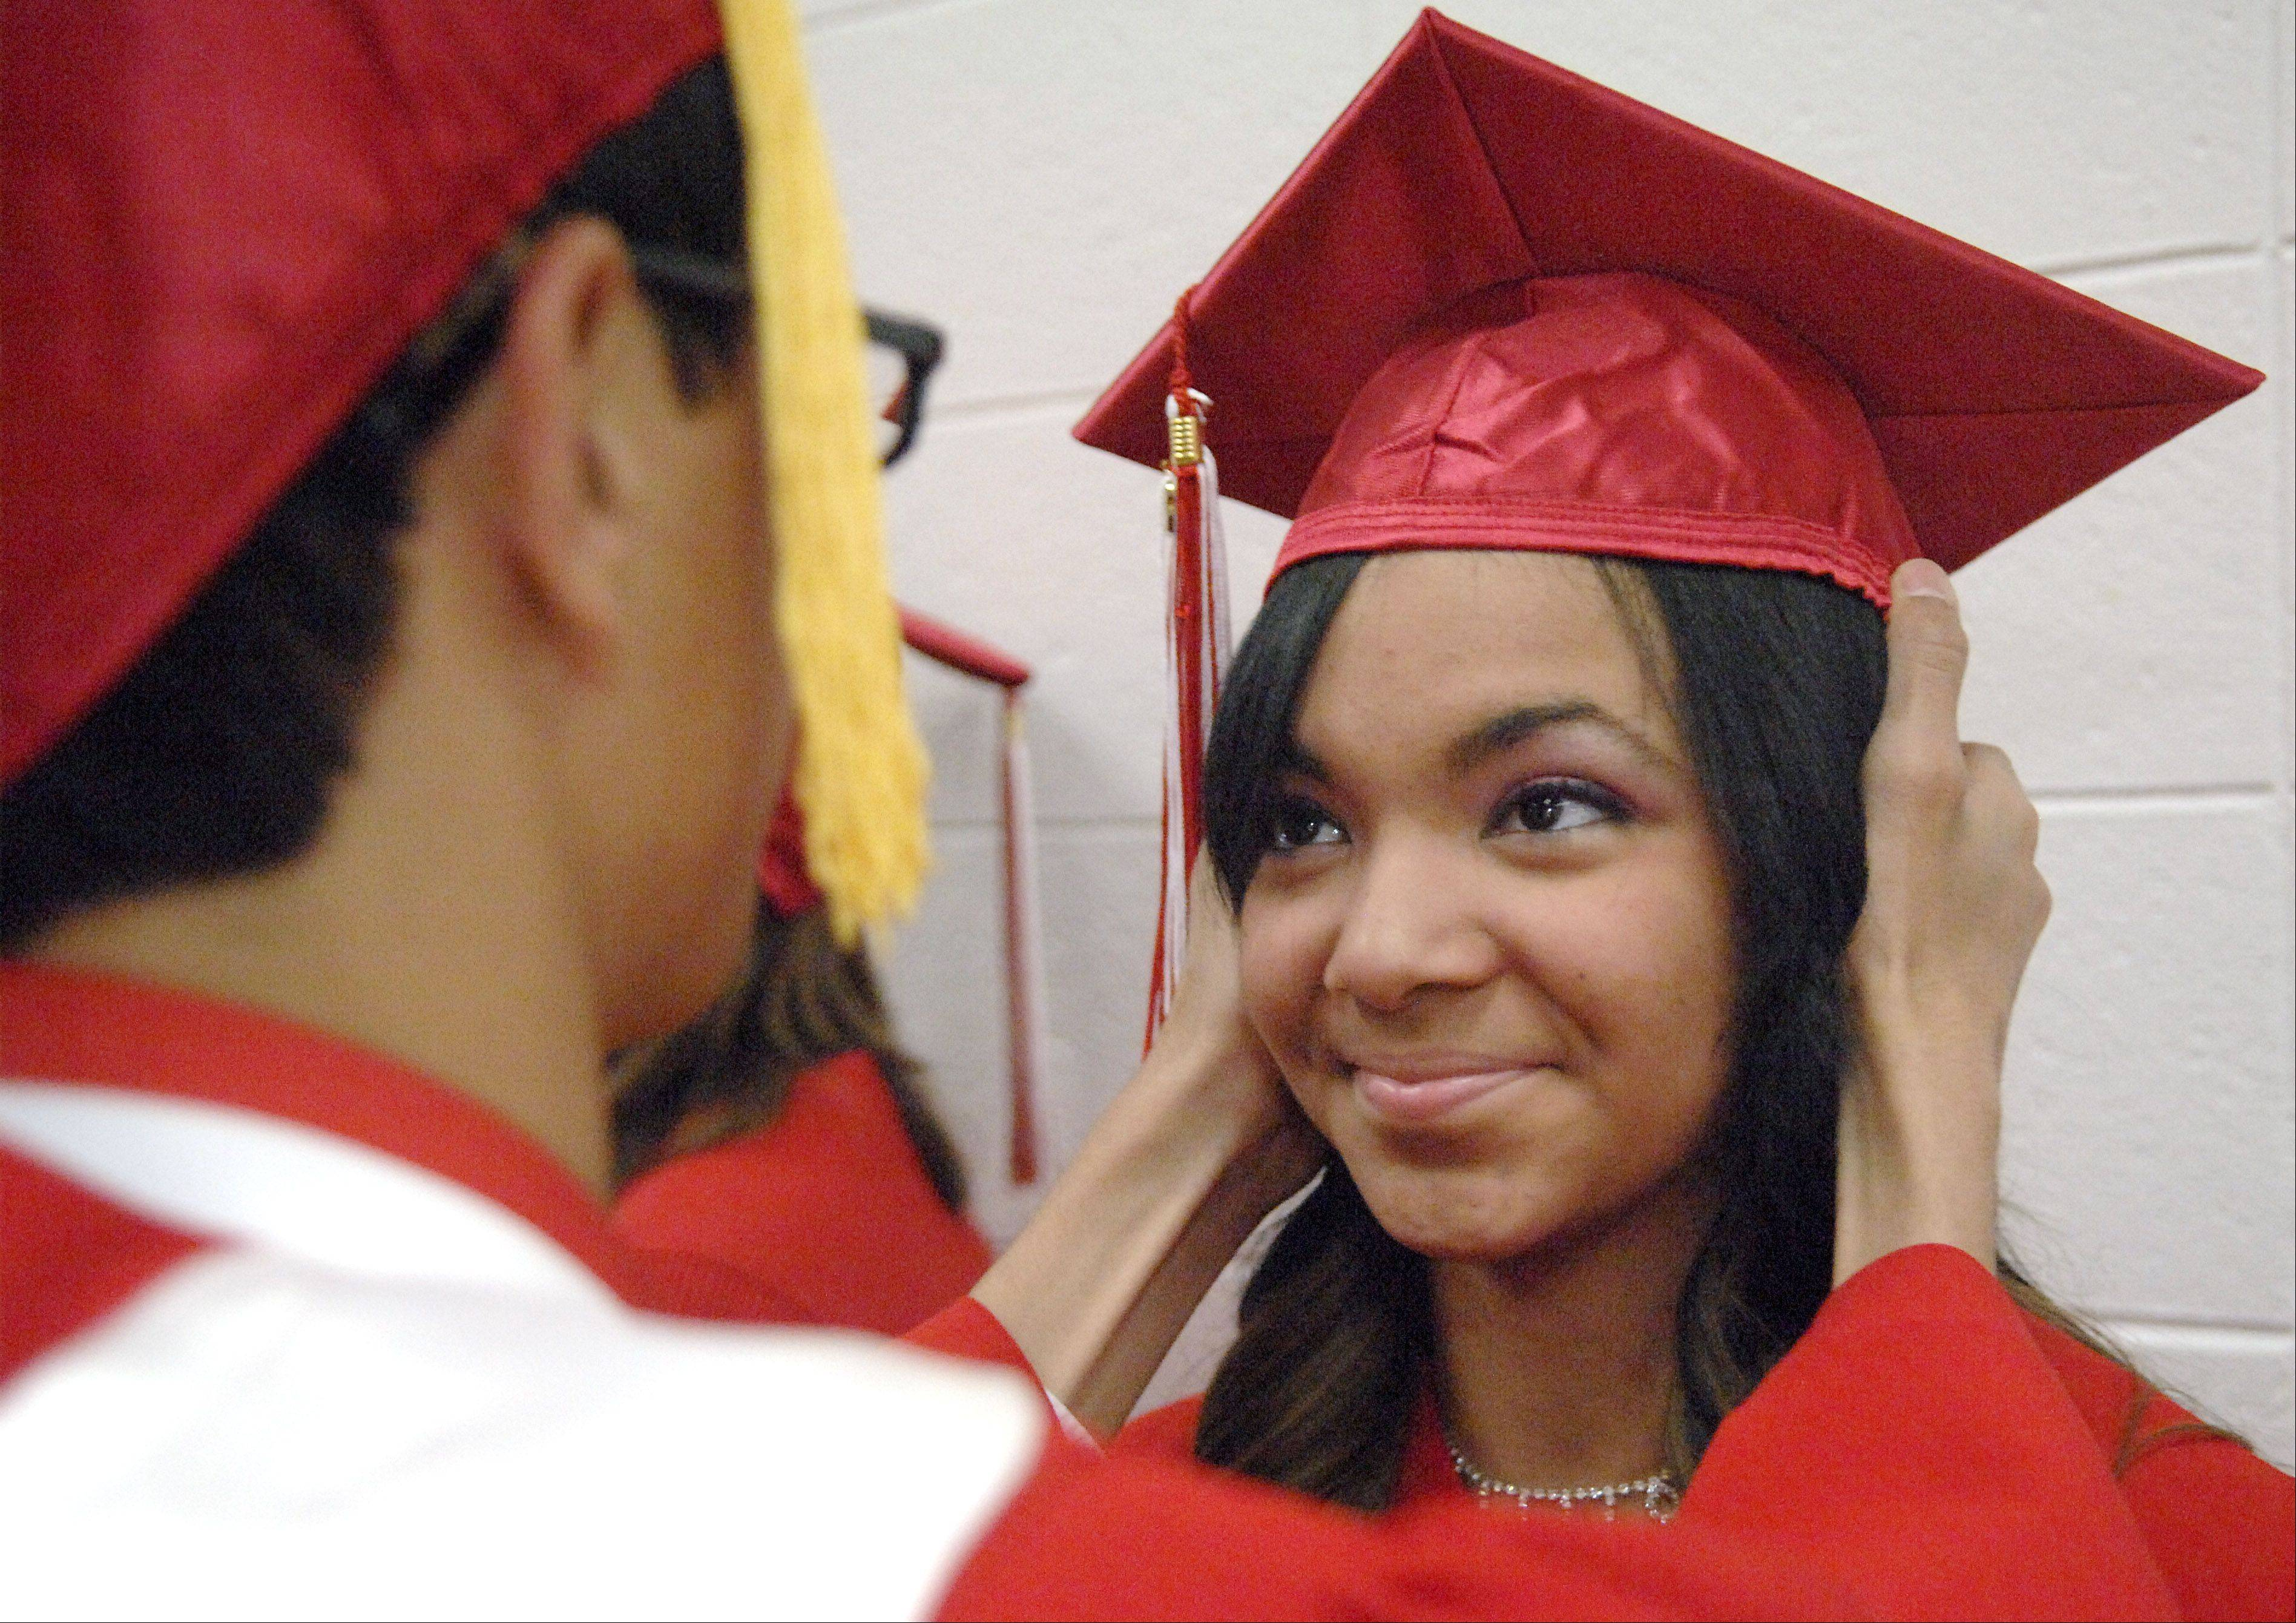 Yolanda Linneman of Chicago Heights has her cap adjusted by friend and classmate James Ranum of Campbell, CA before they walk into the gymnasium for their graduation ceremony from Mooseheart High School in Batavia on Saturday, June 2. Ranum was the class valedictorian.